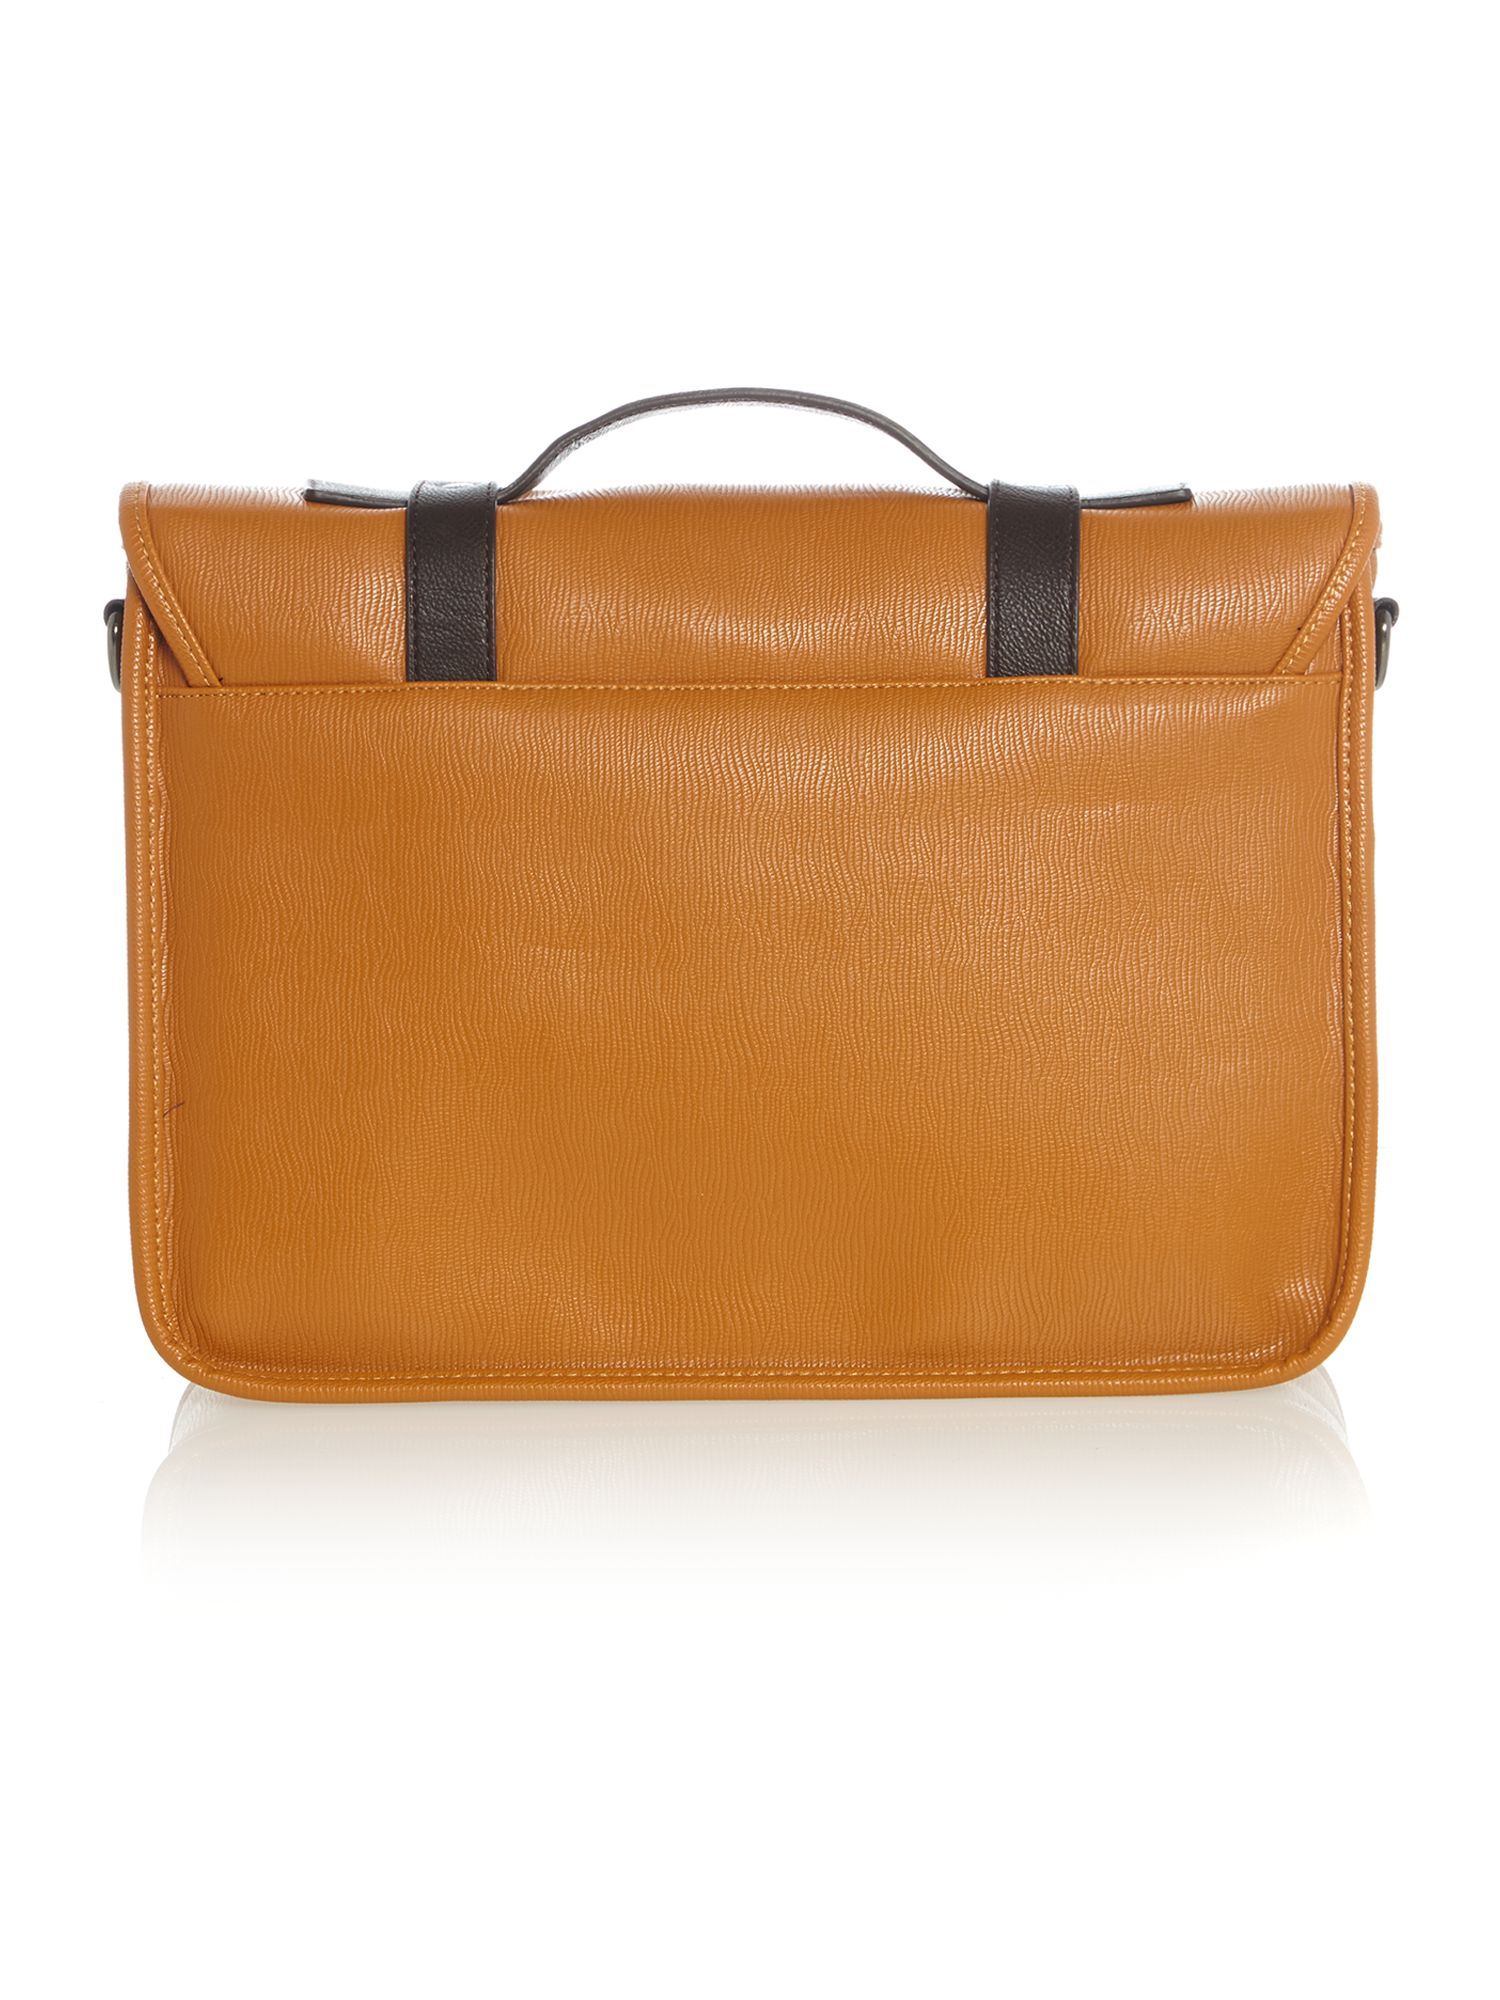 Woodgrain despatch bag